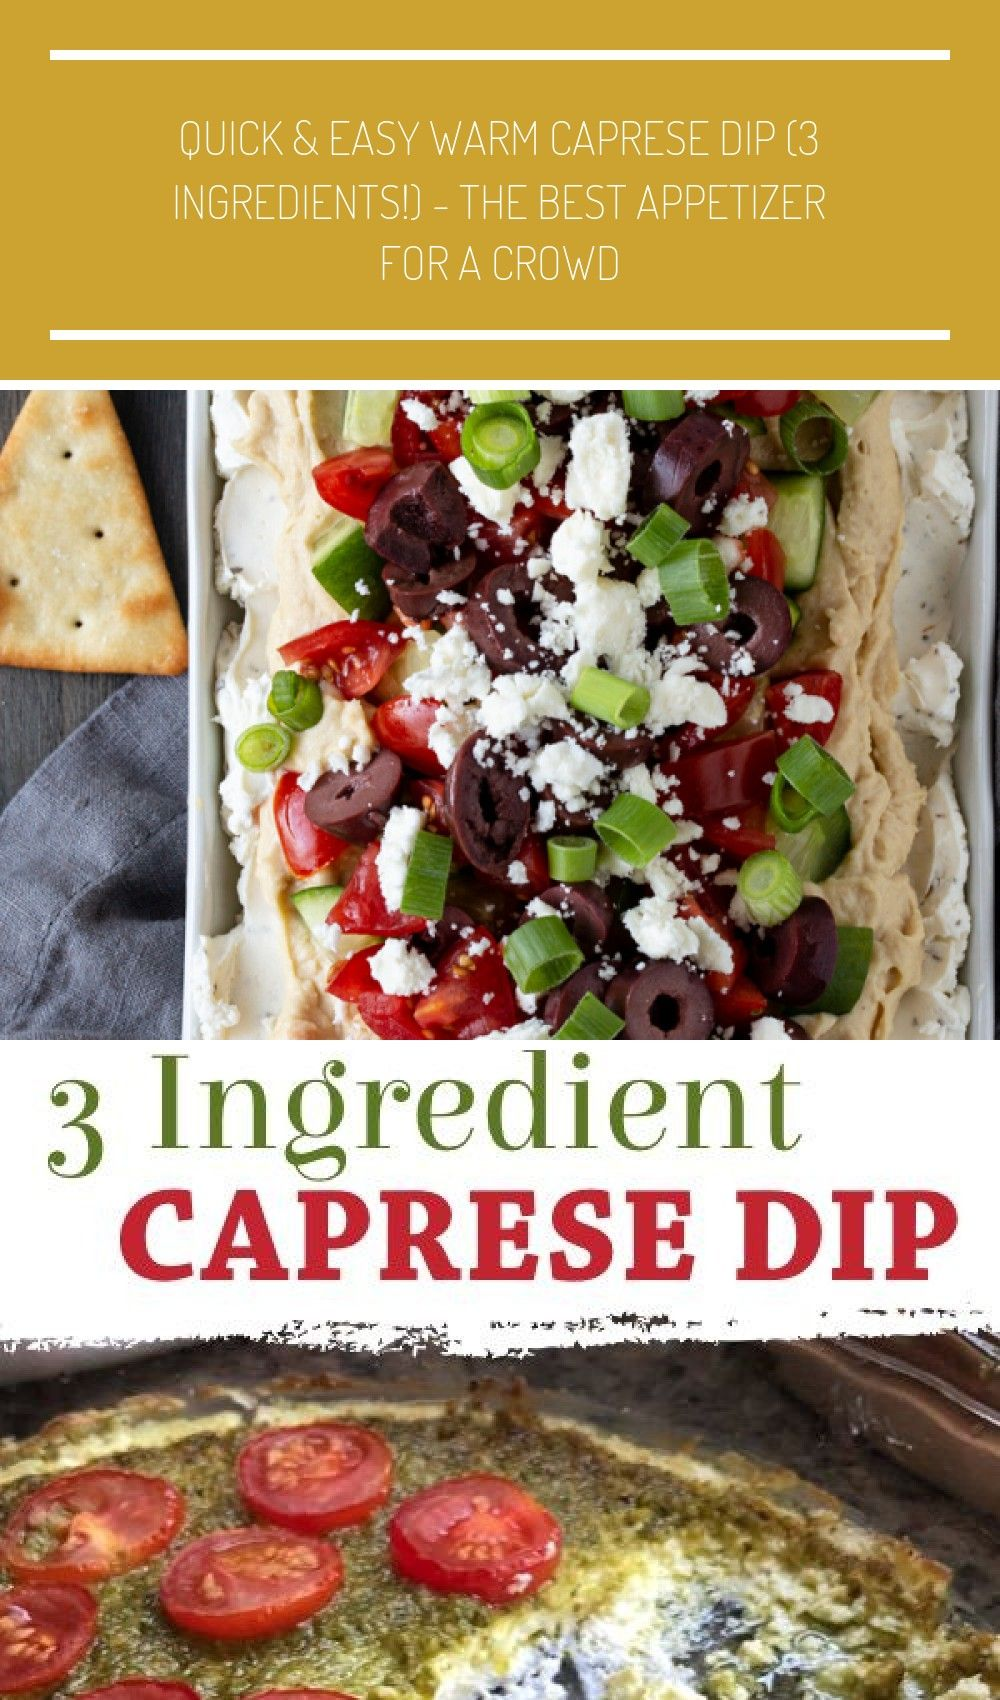 This Layered Greek Dip recipe (a spinoff of a 7-layer dip) is an easy, make-ahead appetizer for a p